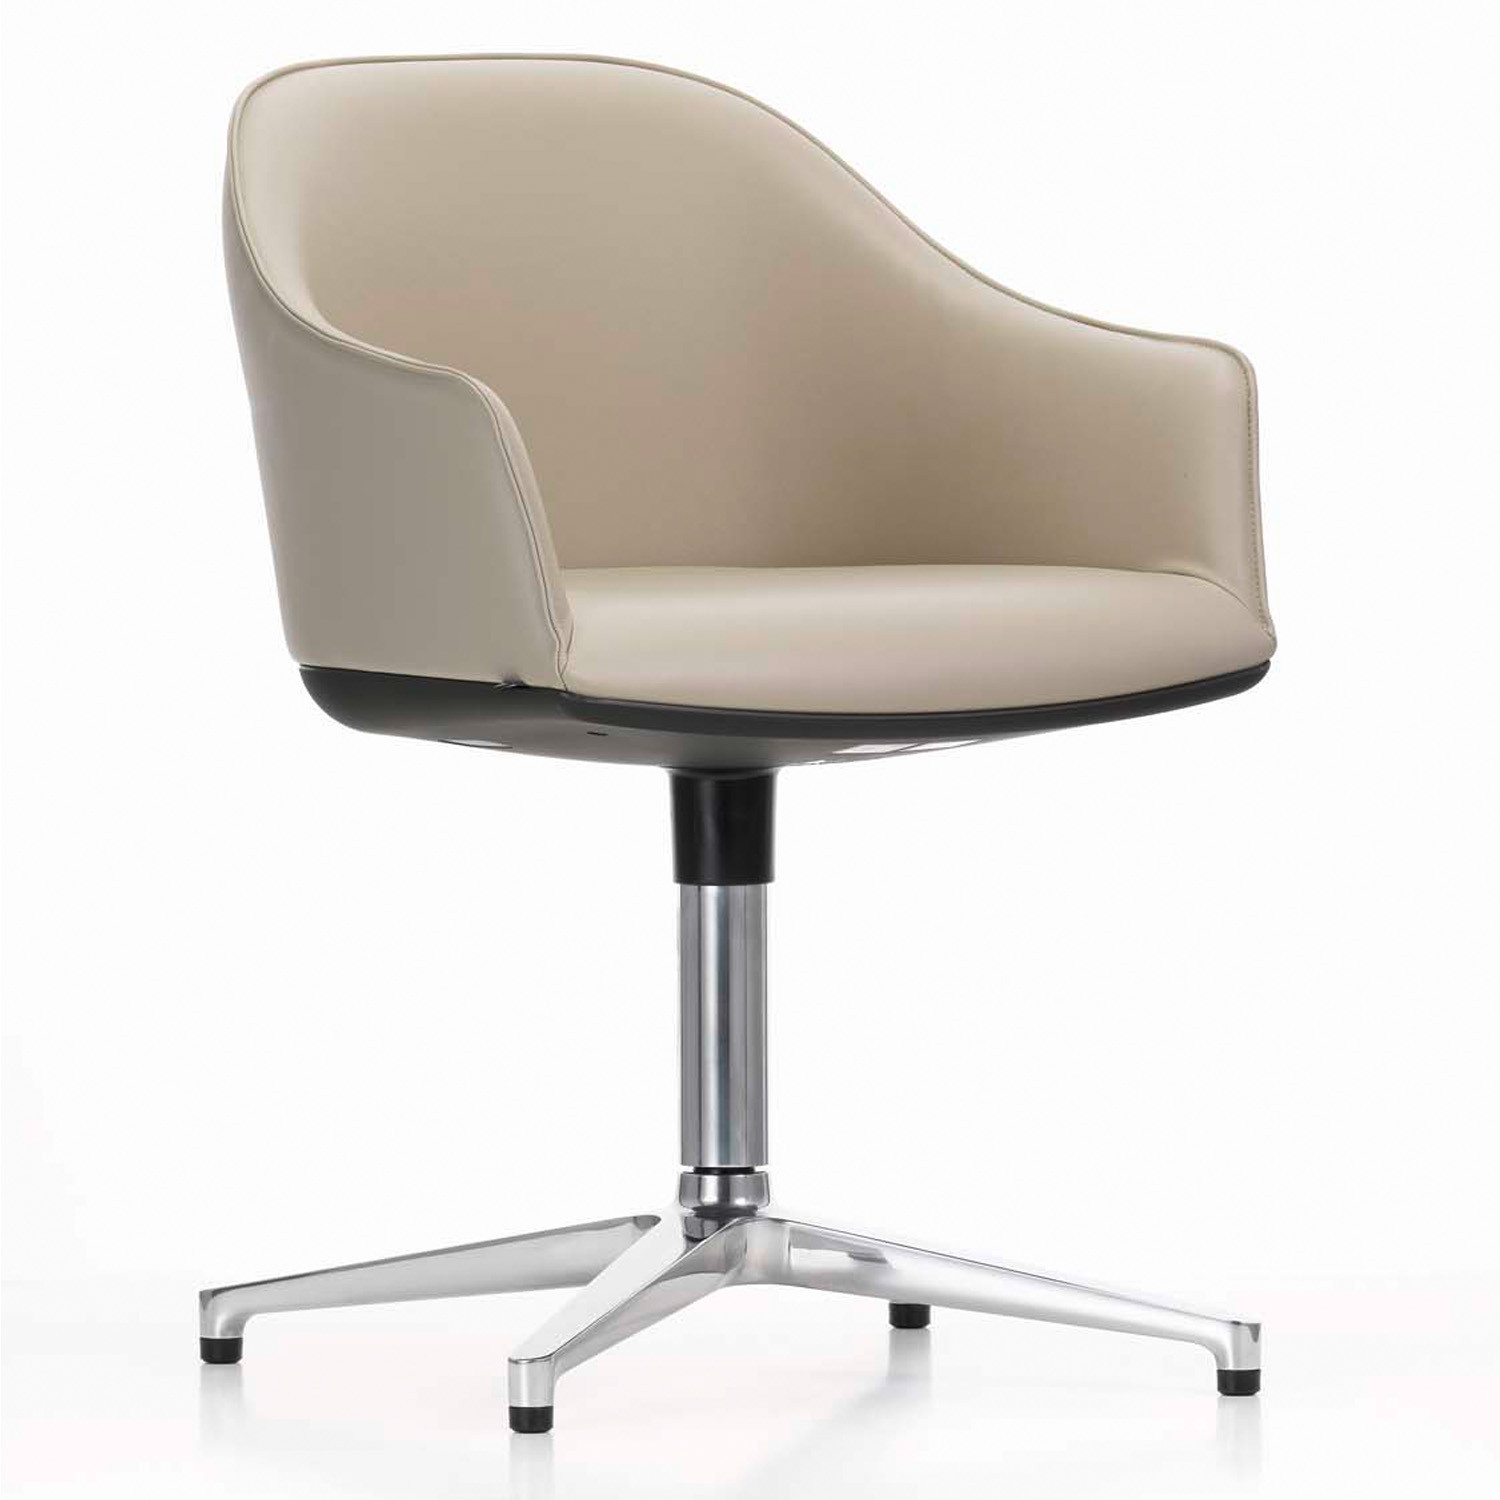 Softshell Chair with four-star base